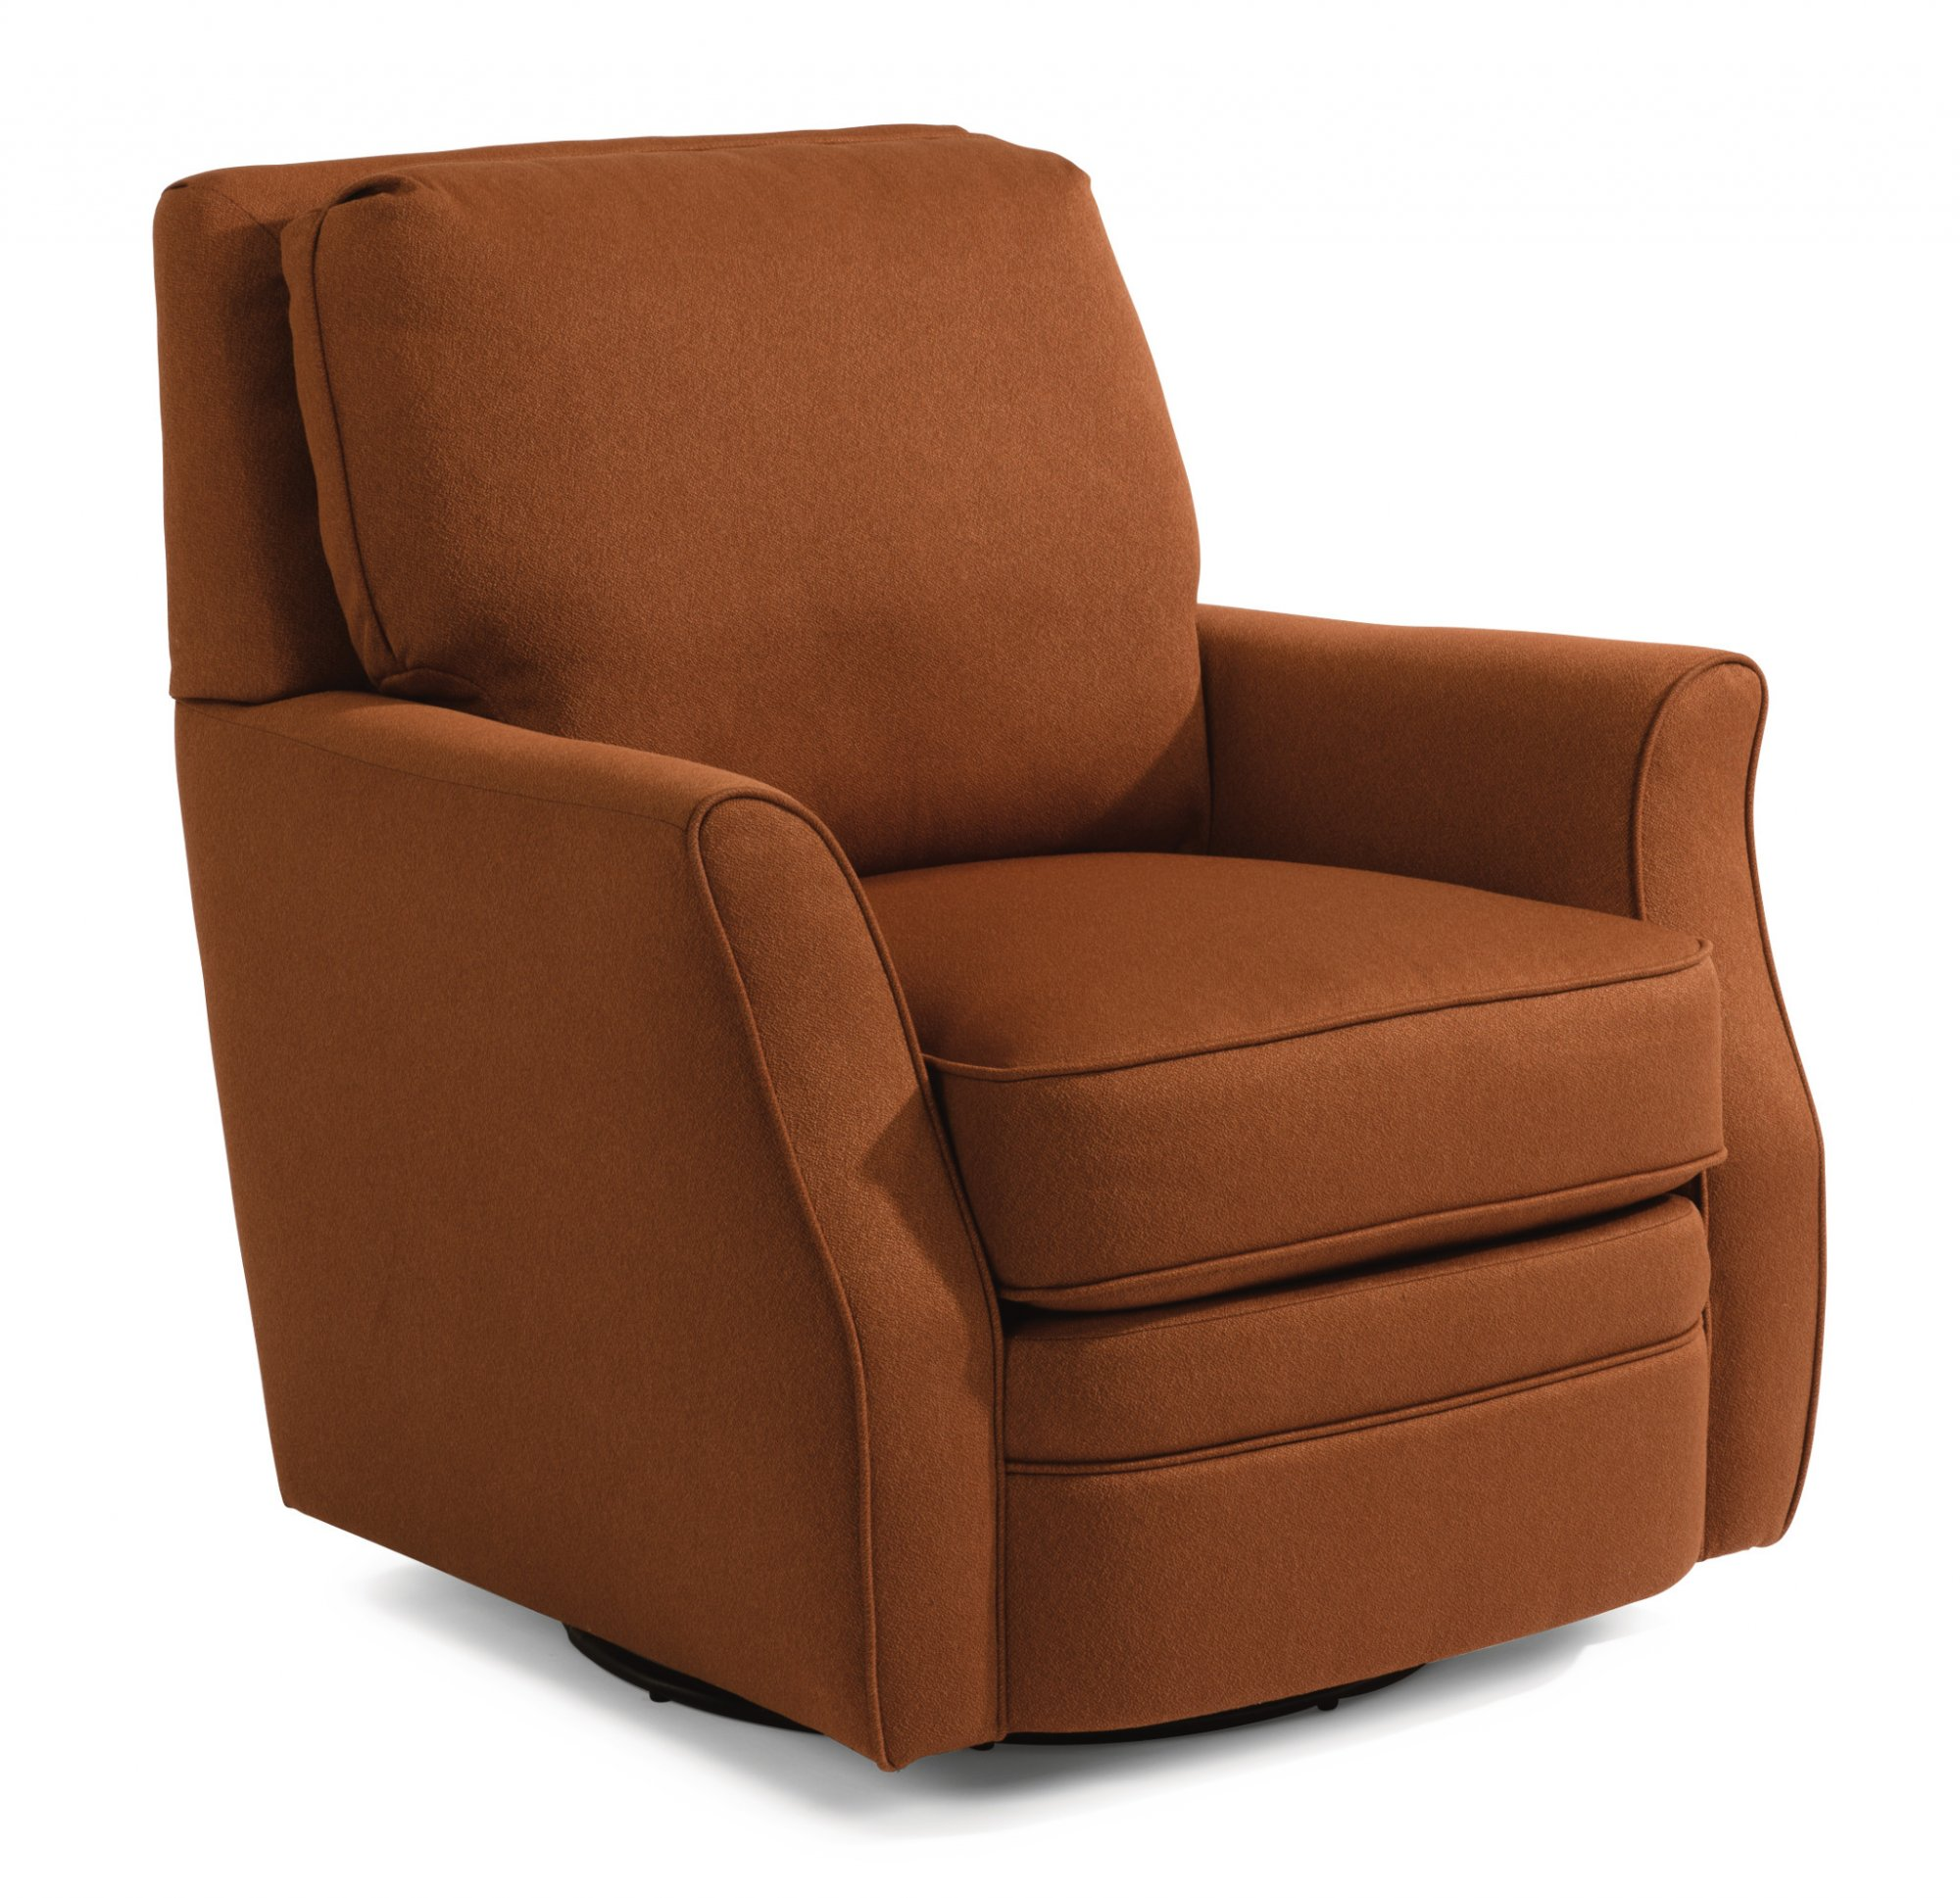 Flexsteel Brynn  Fabric Swivel Chair